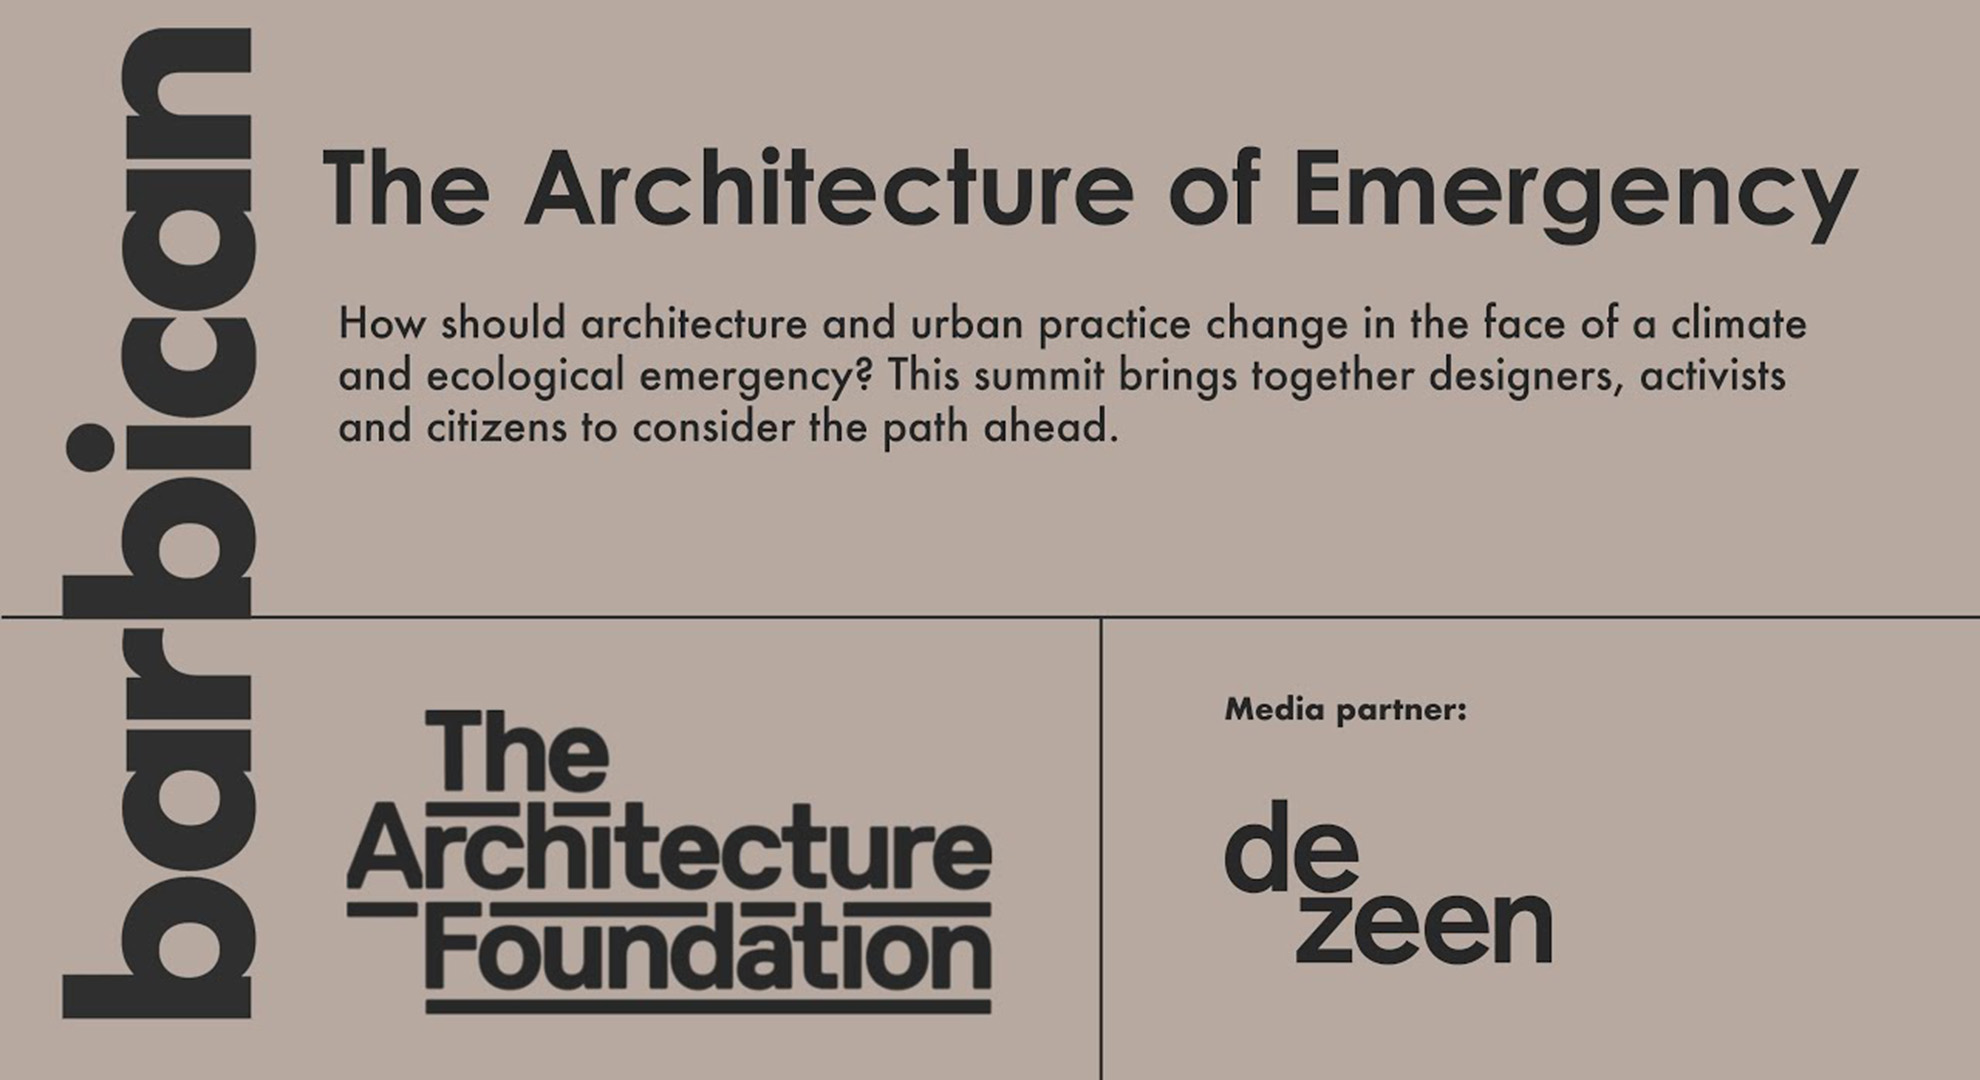 The Architecture of Emergency Summit